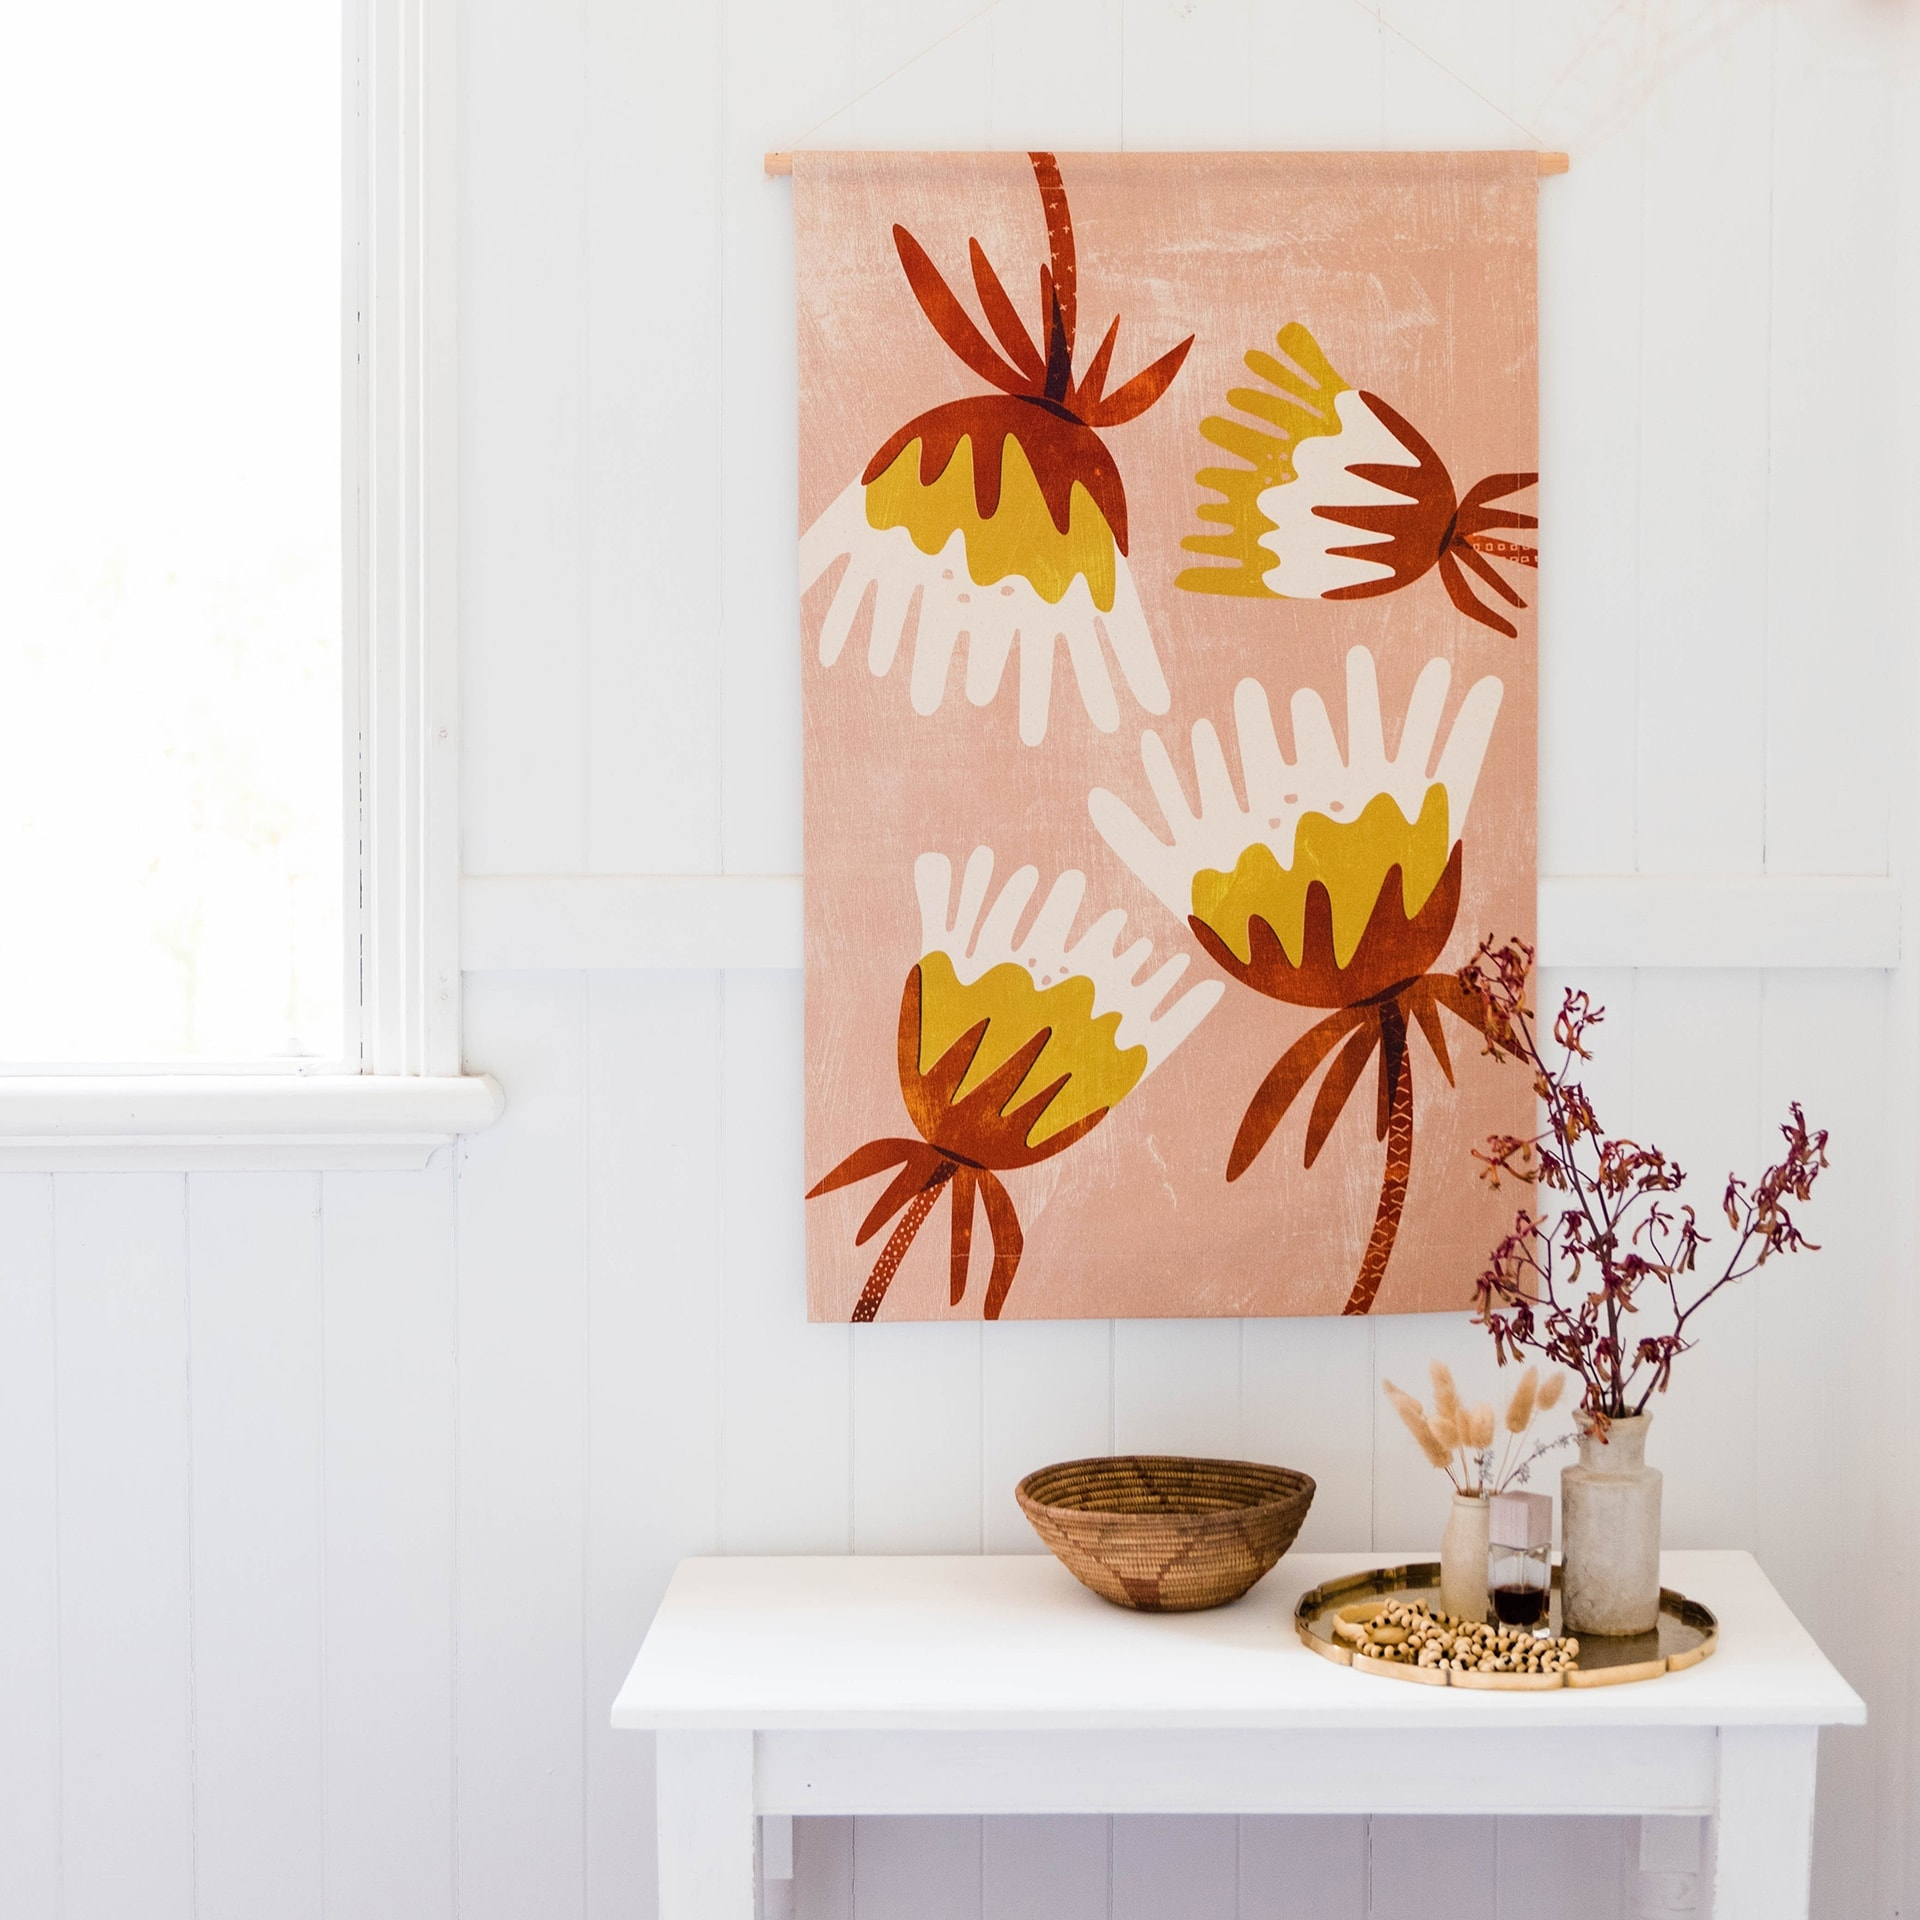 Fabric Wall Hangings Trend & Where To Shop It – Tlc Interiors Pertaining To Most Recently Released Blended Fabric Wall Hangings (View 8 of 20)